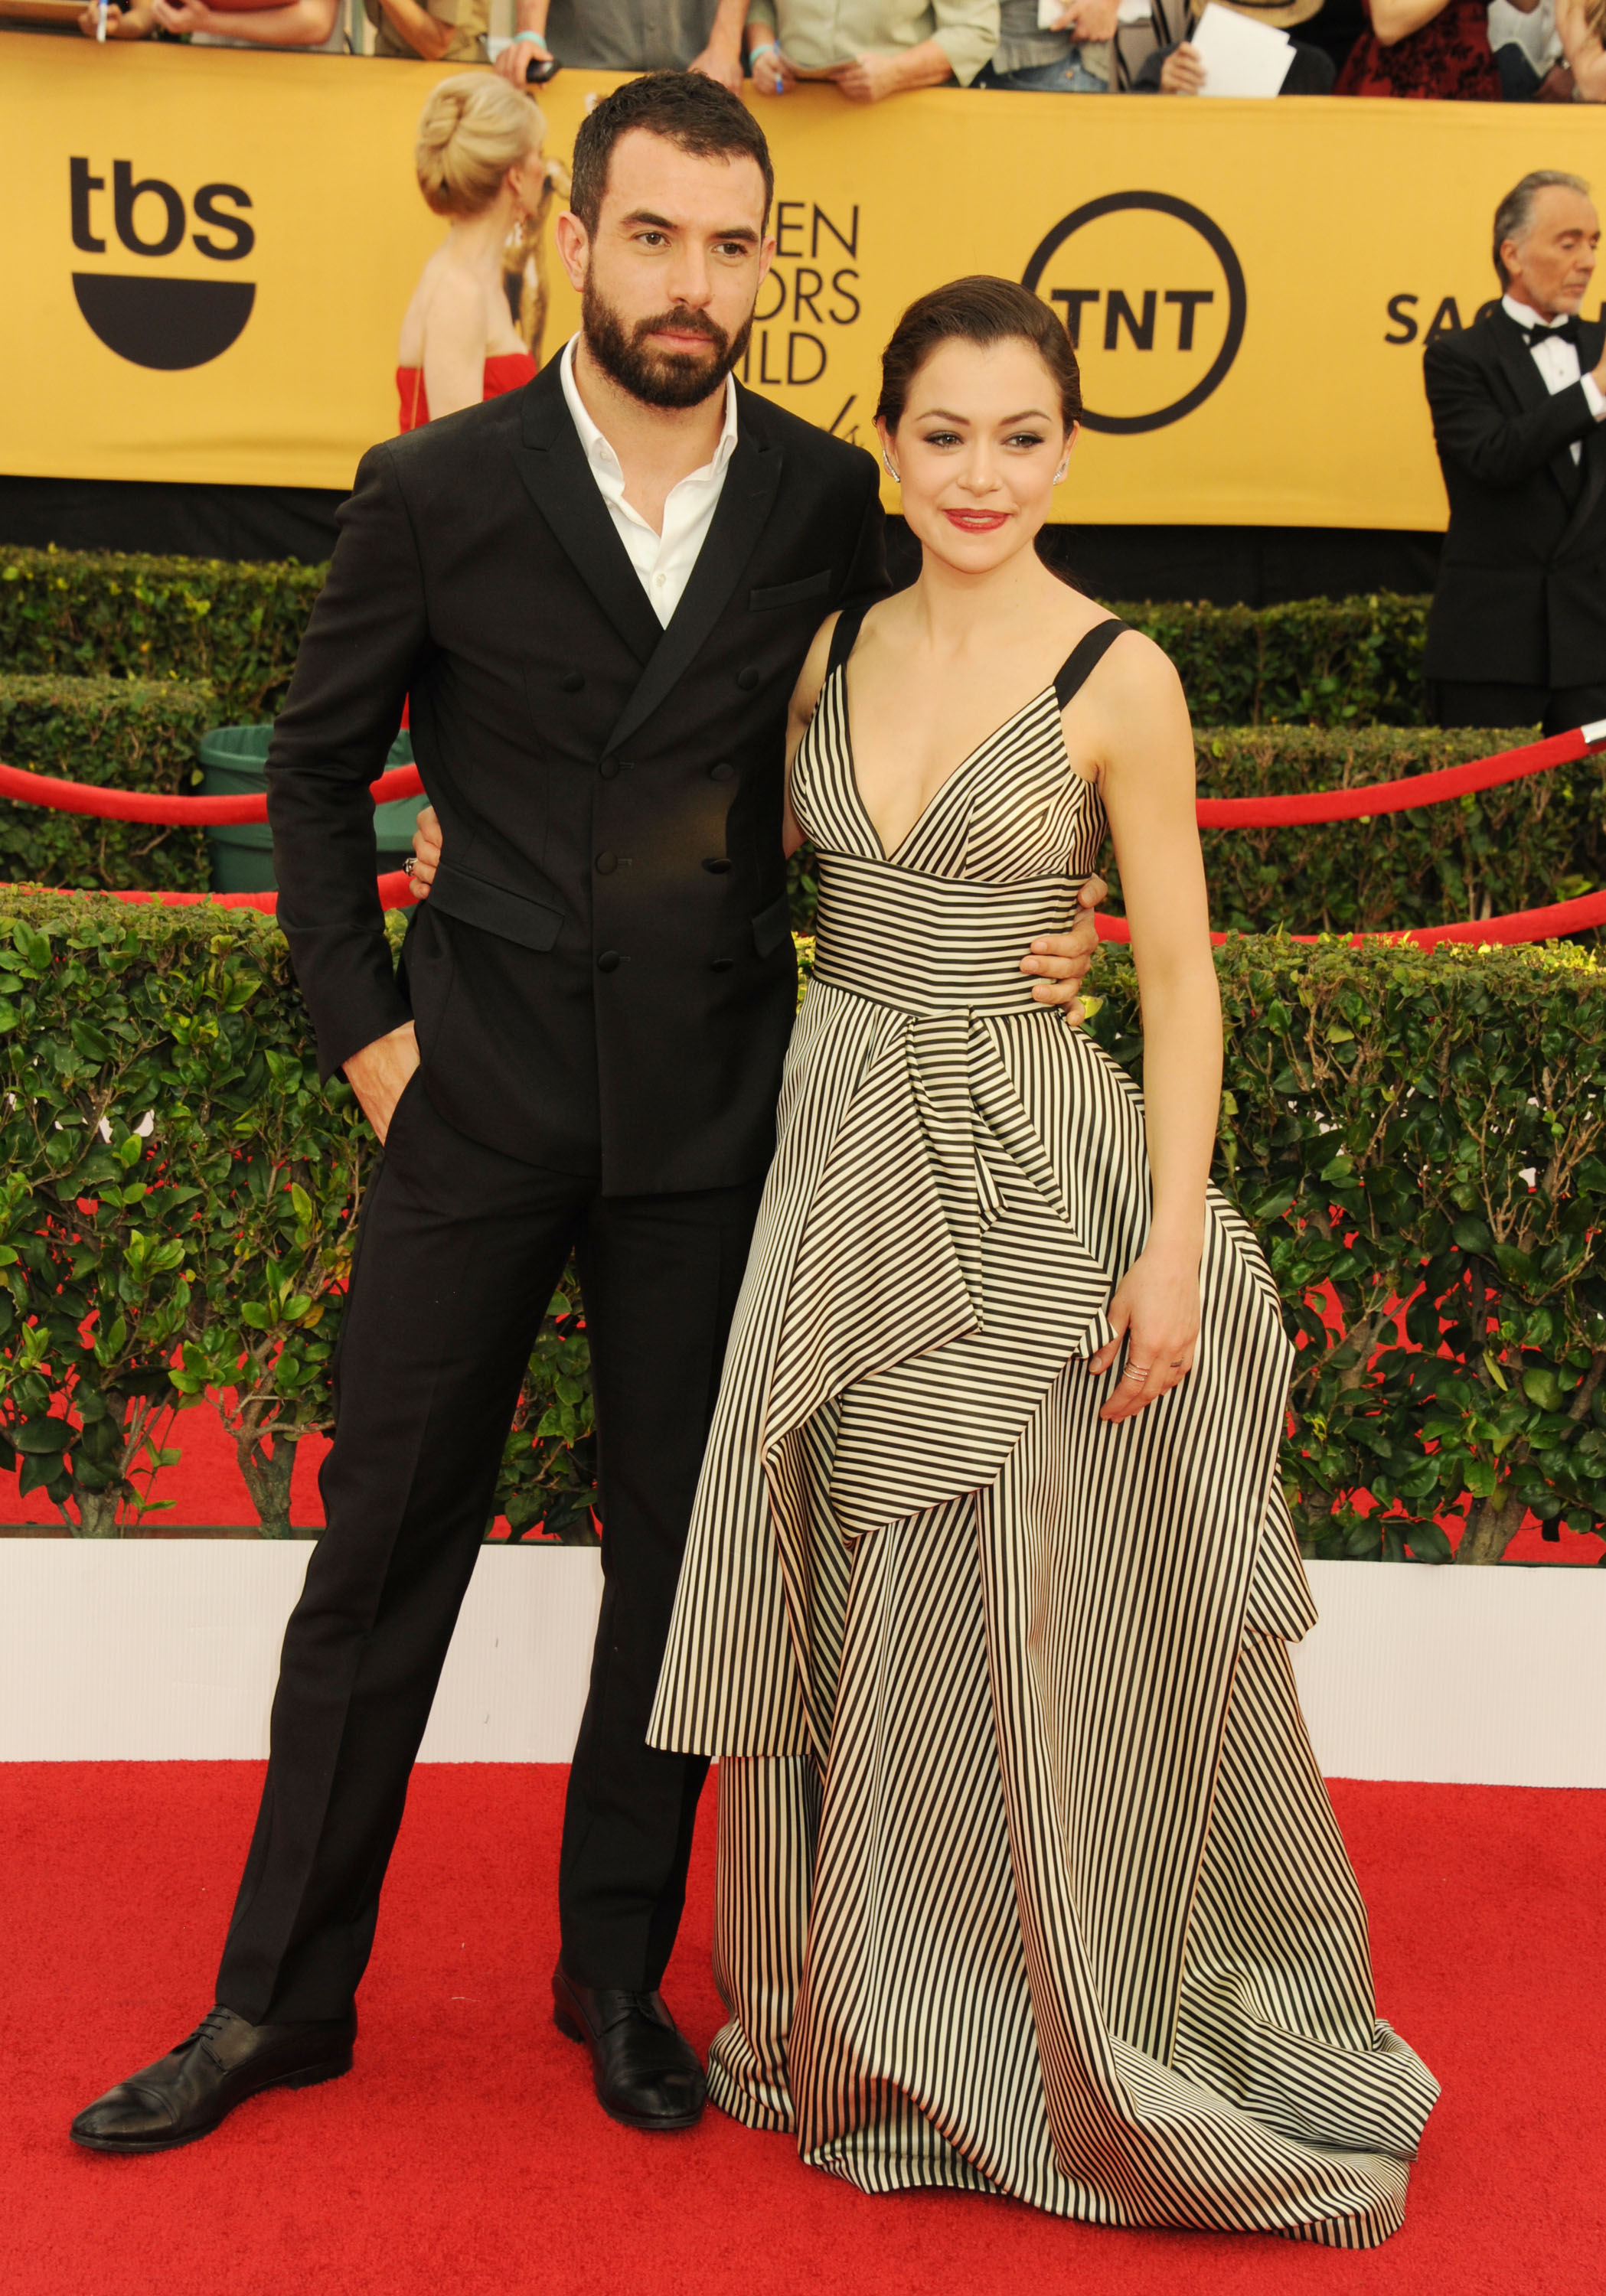 SAG Awards Well Played: Tatiana Maslany in Oscar de la Renta